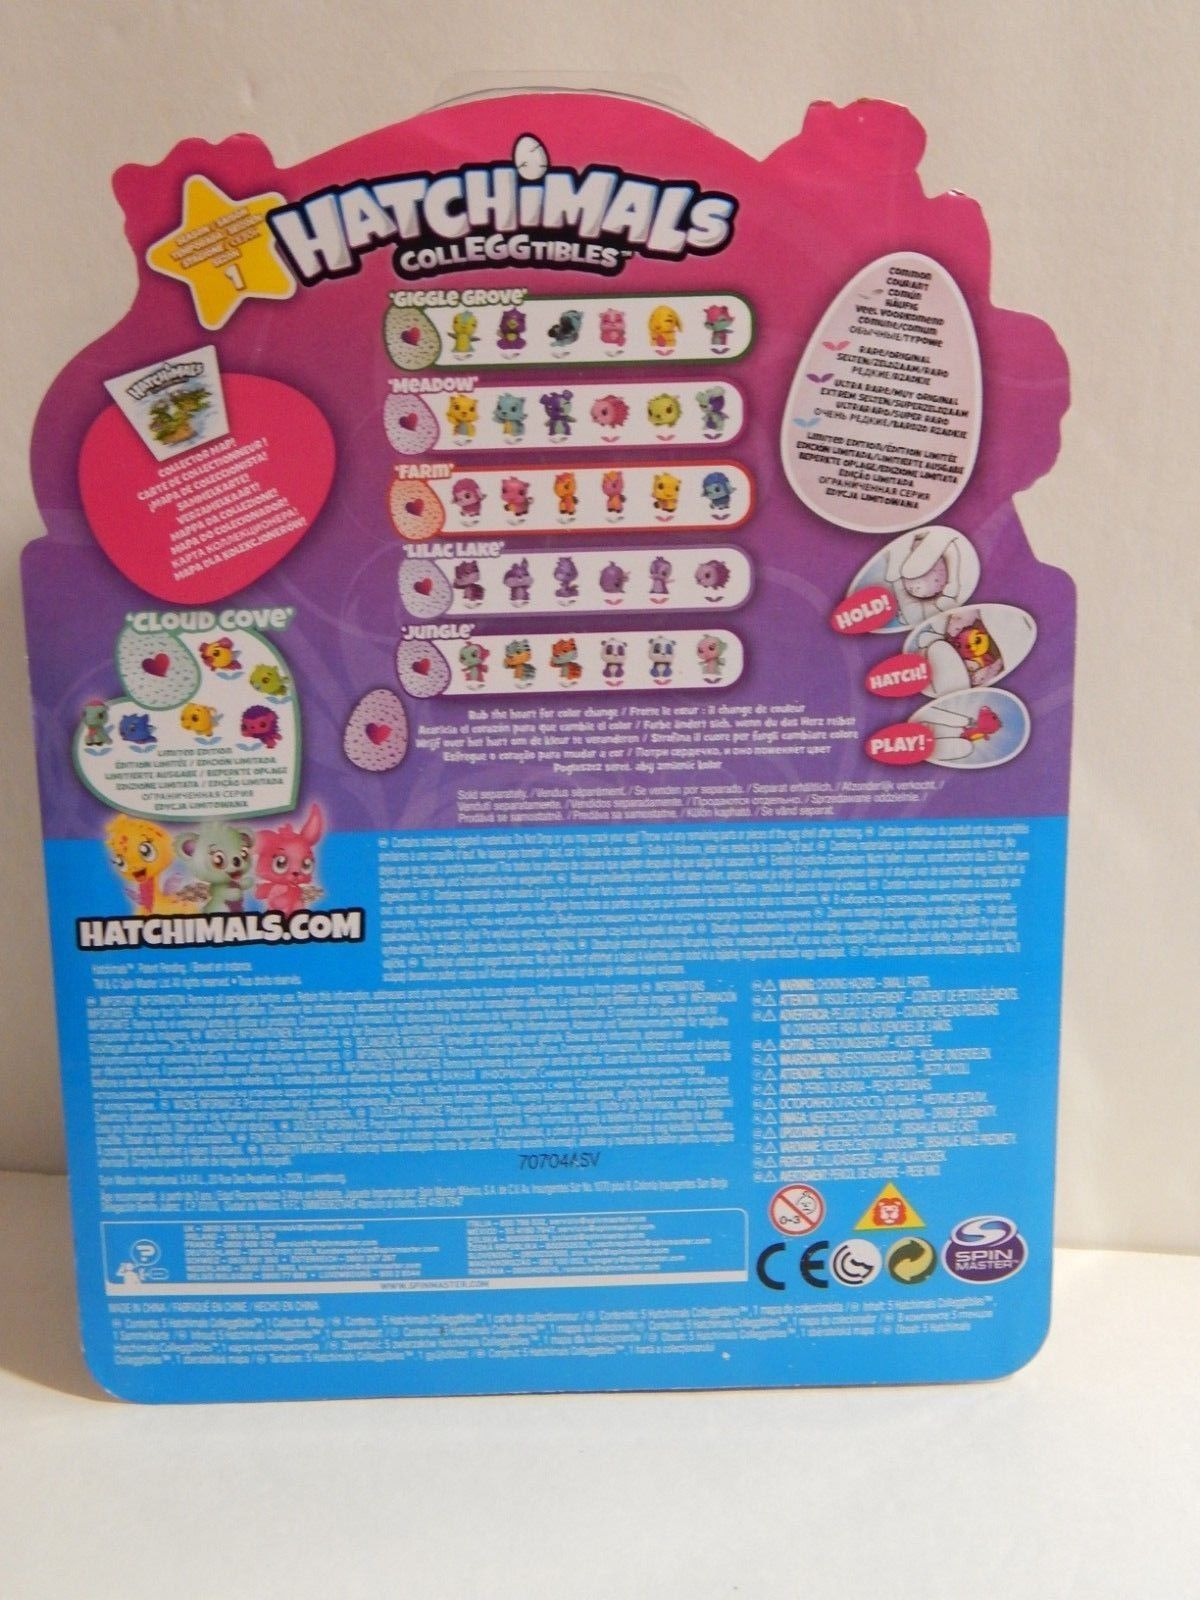 Hatchimals Colleggtibles 4 Pack Plus Bonus Season 1